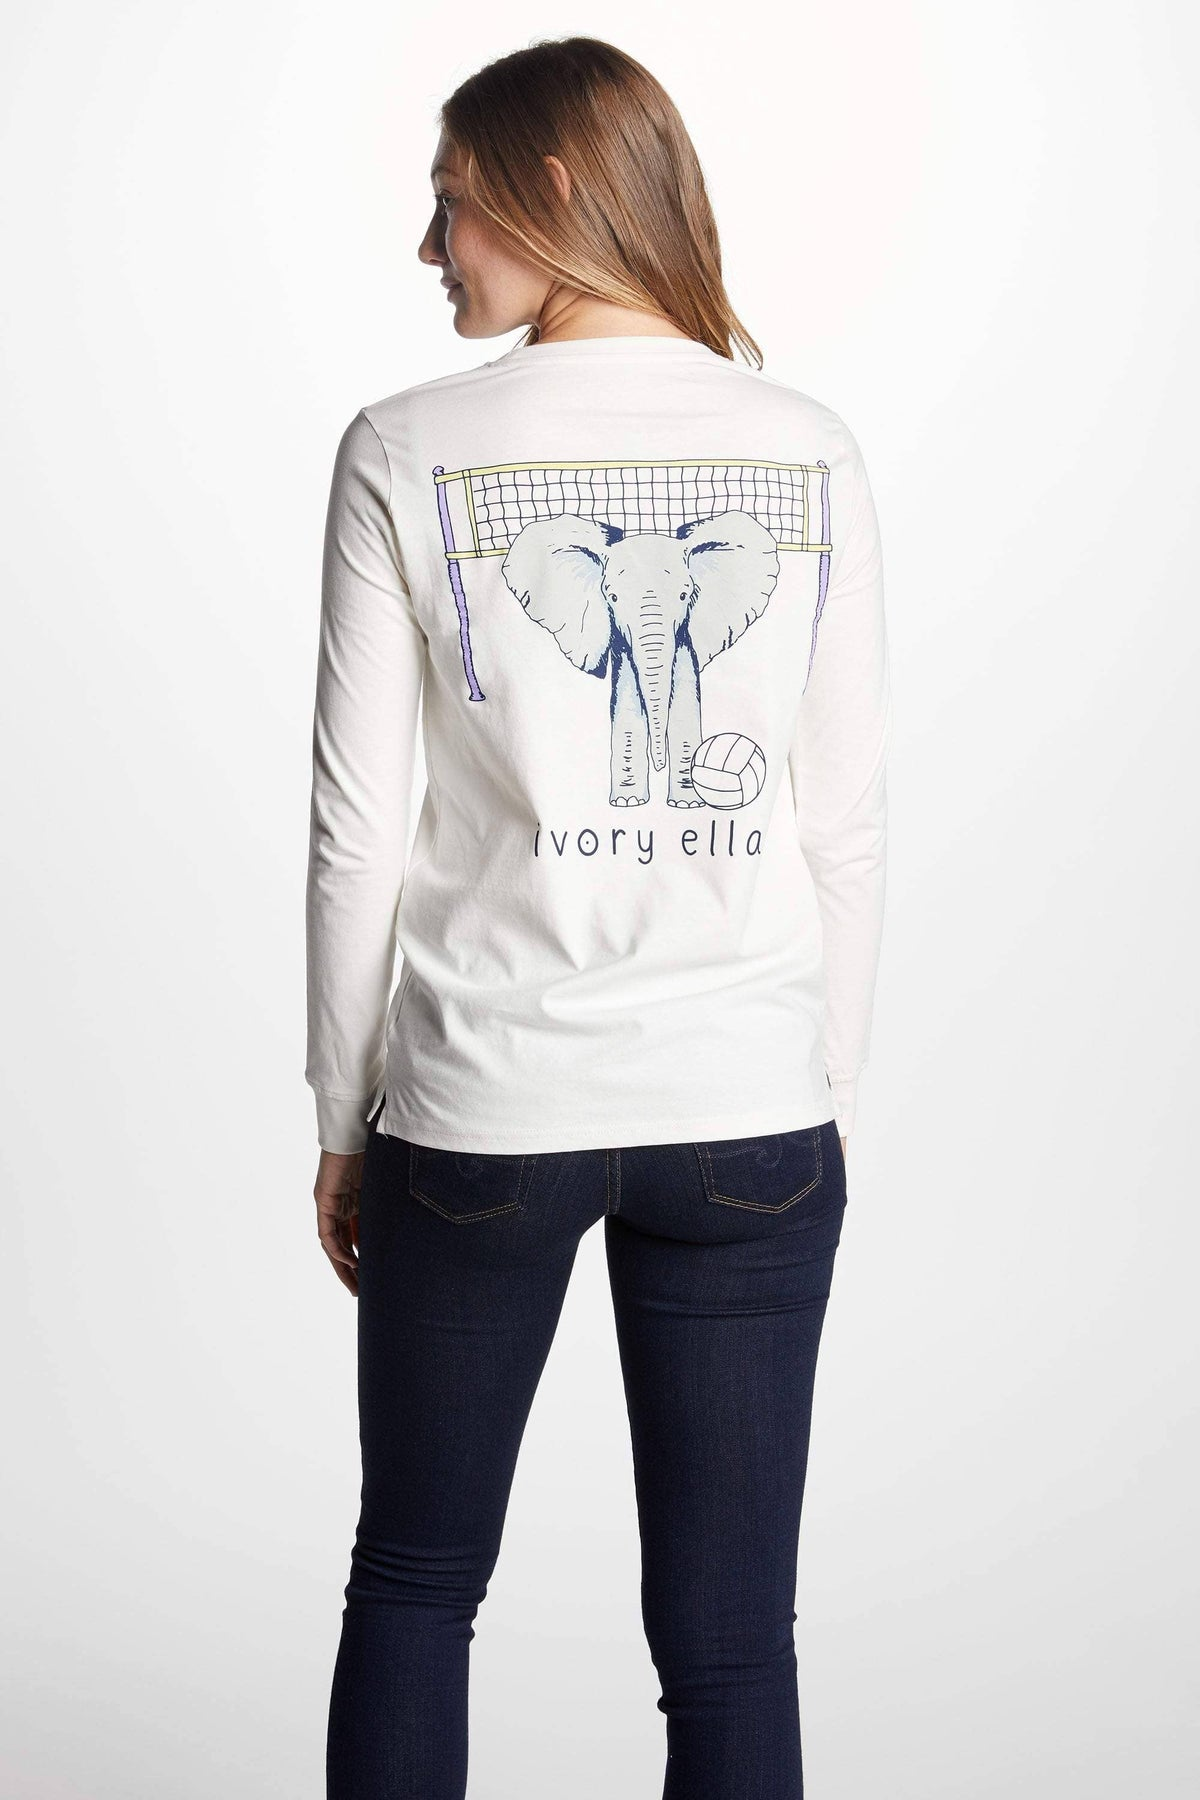 4ab5774340a4 Ivory Ella Women's Long Sleeve Shirts XXS Ella Fit New Volleyball Tee